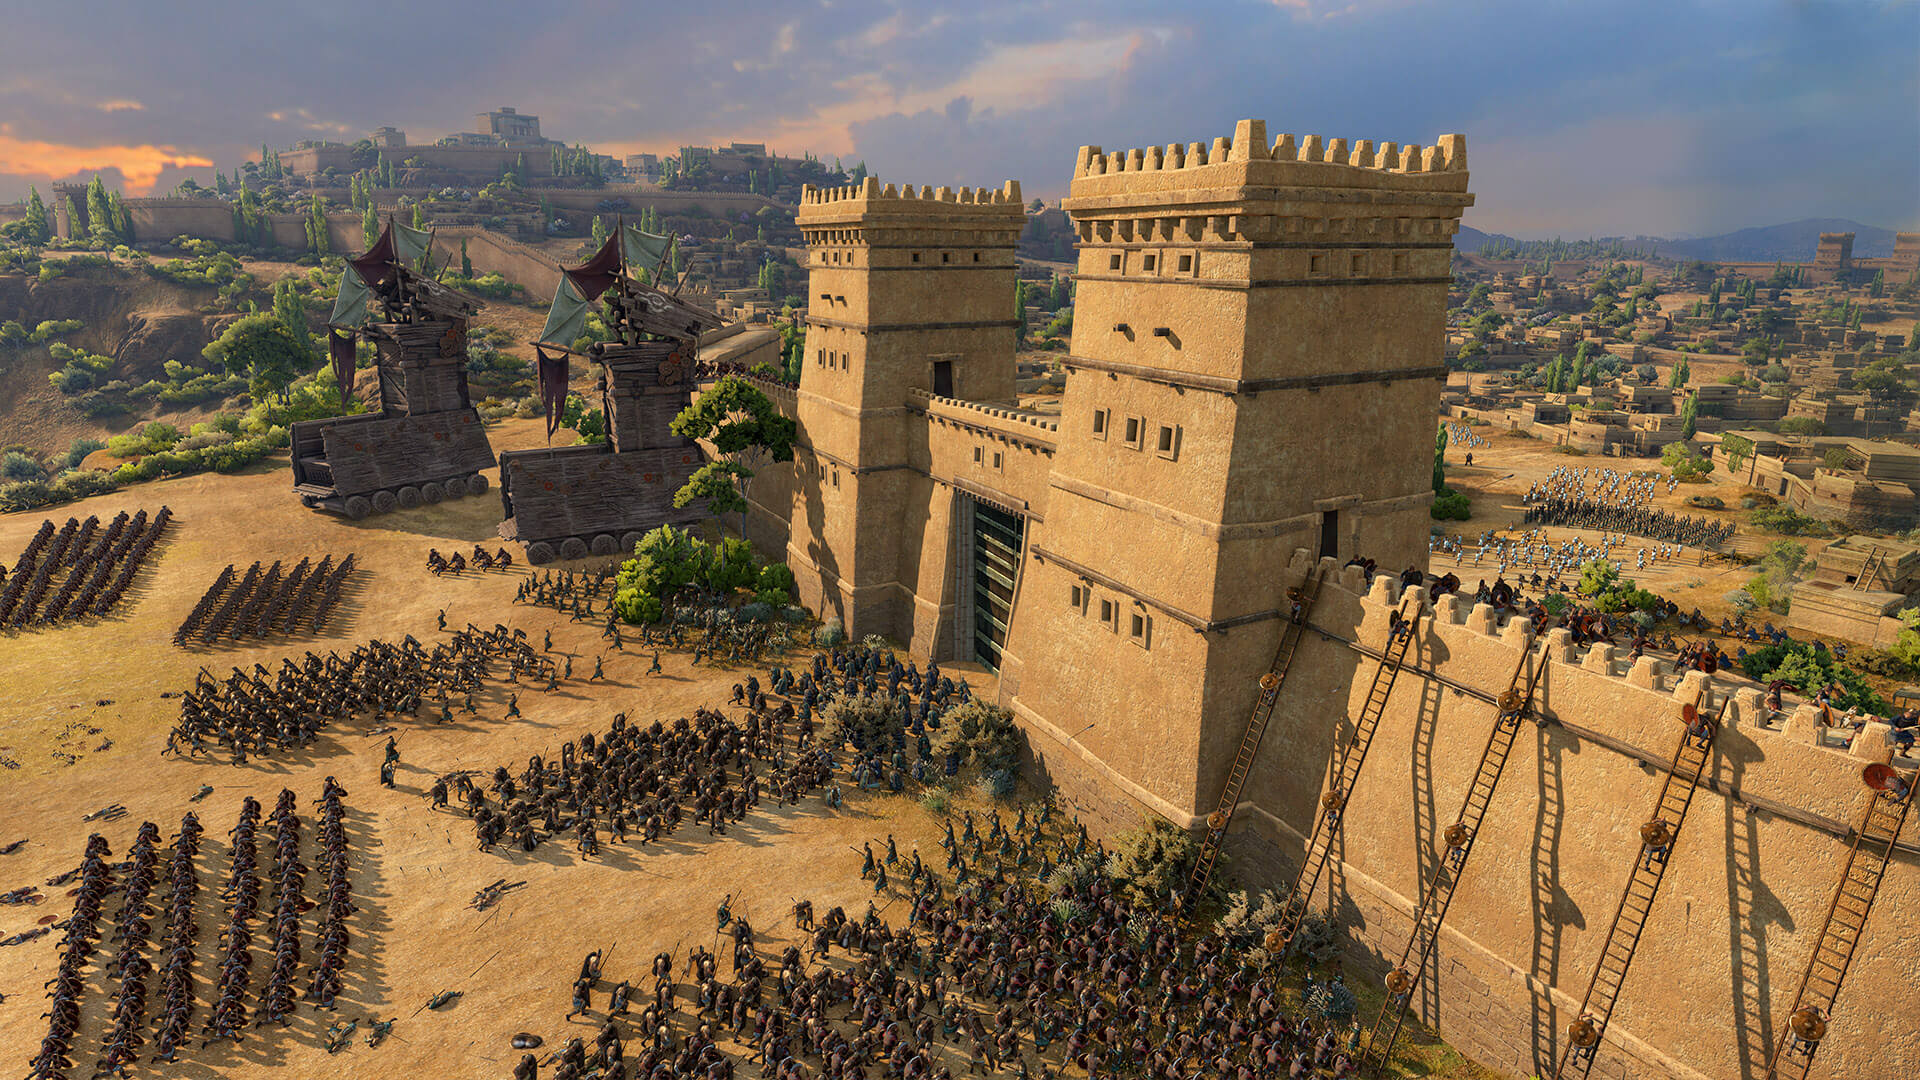 Total War Saga: TROY is FREE on EPICSTORE only for the next 24 hours